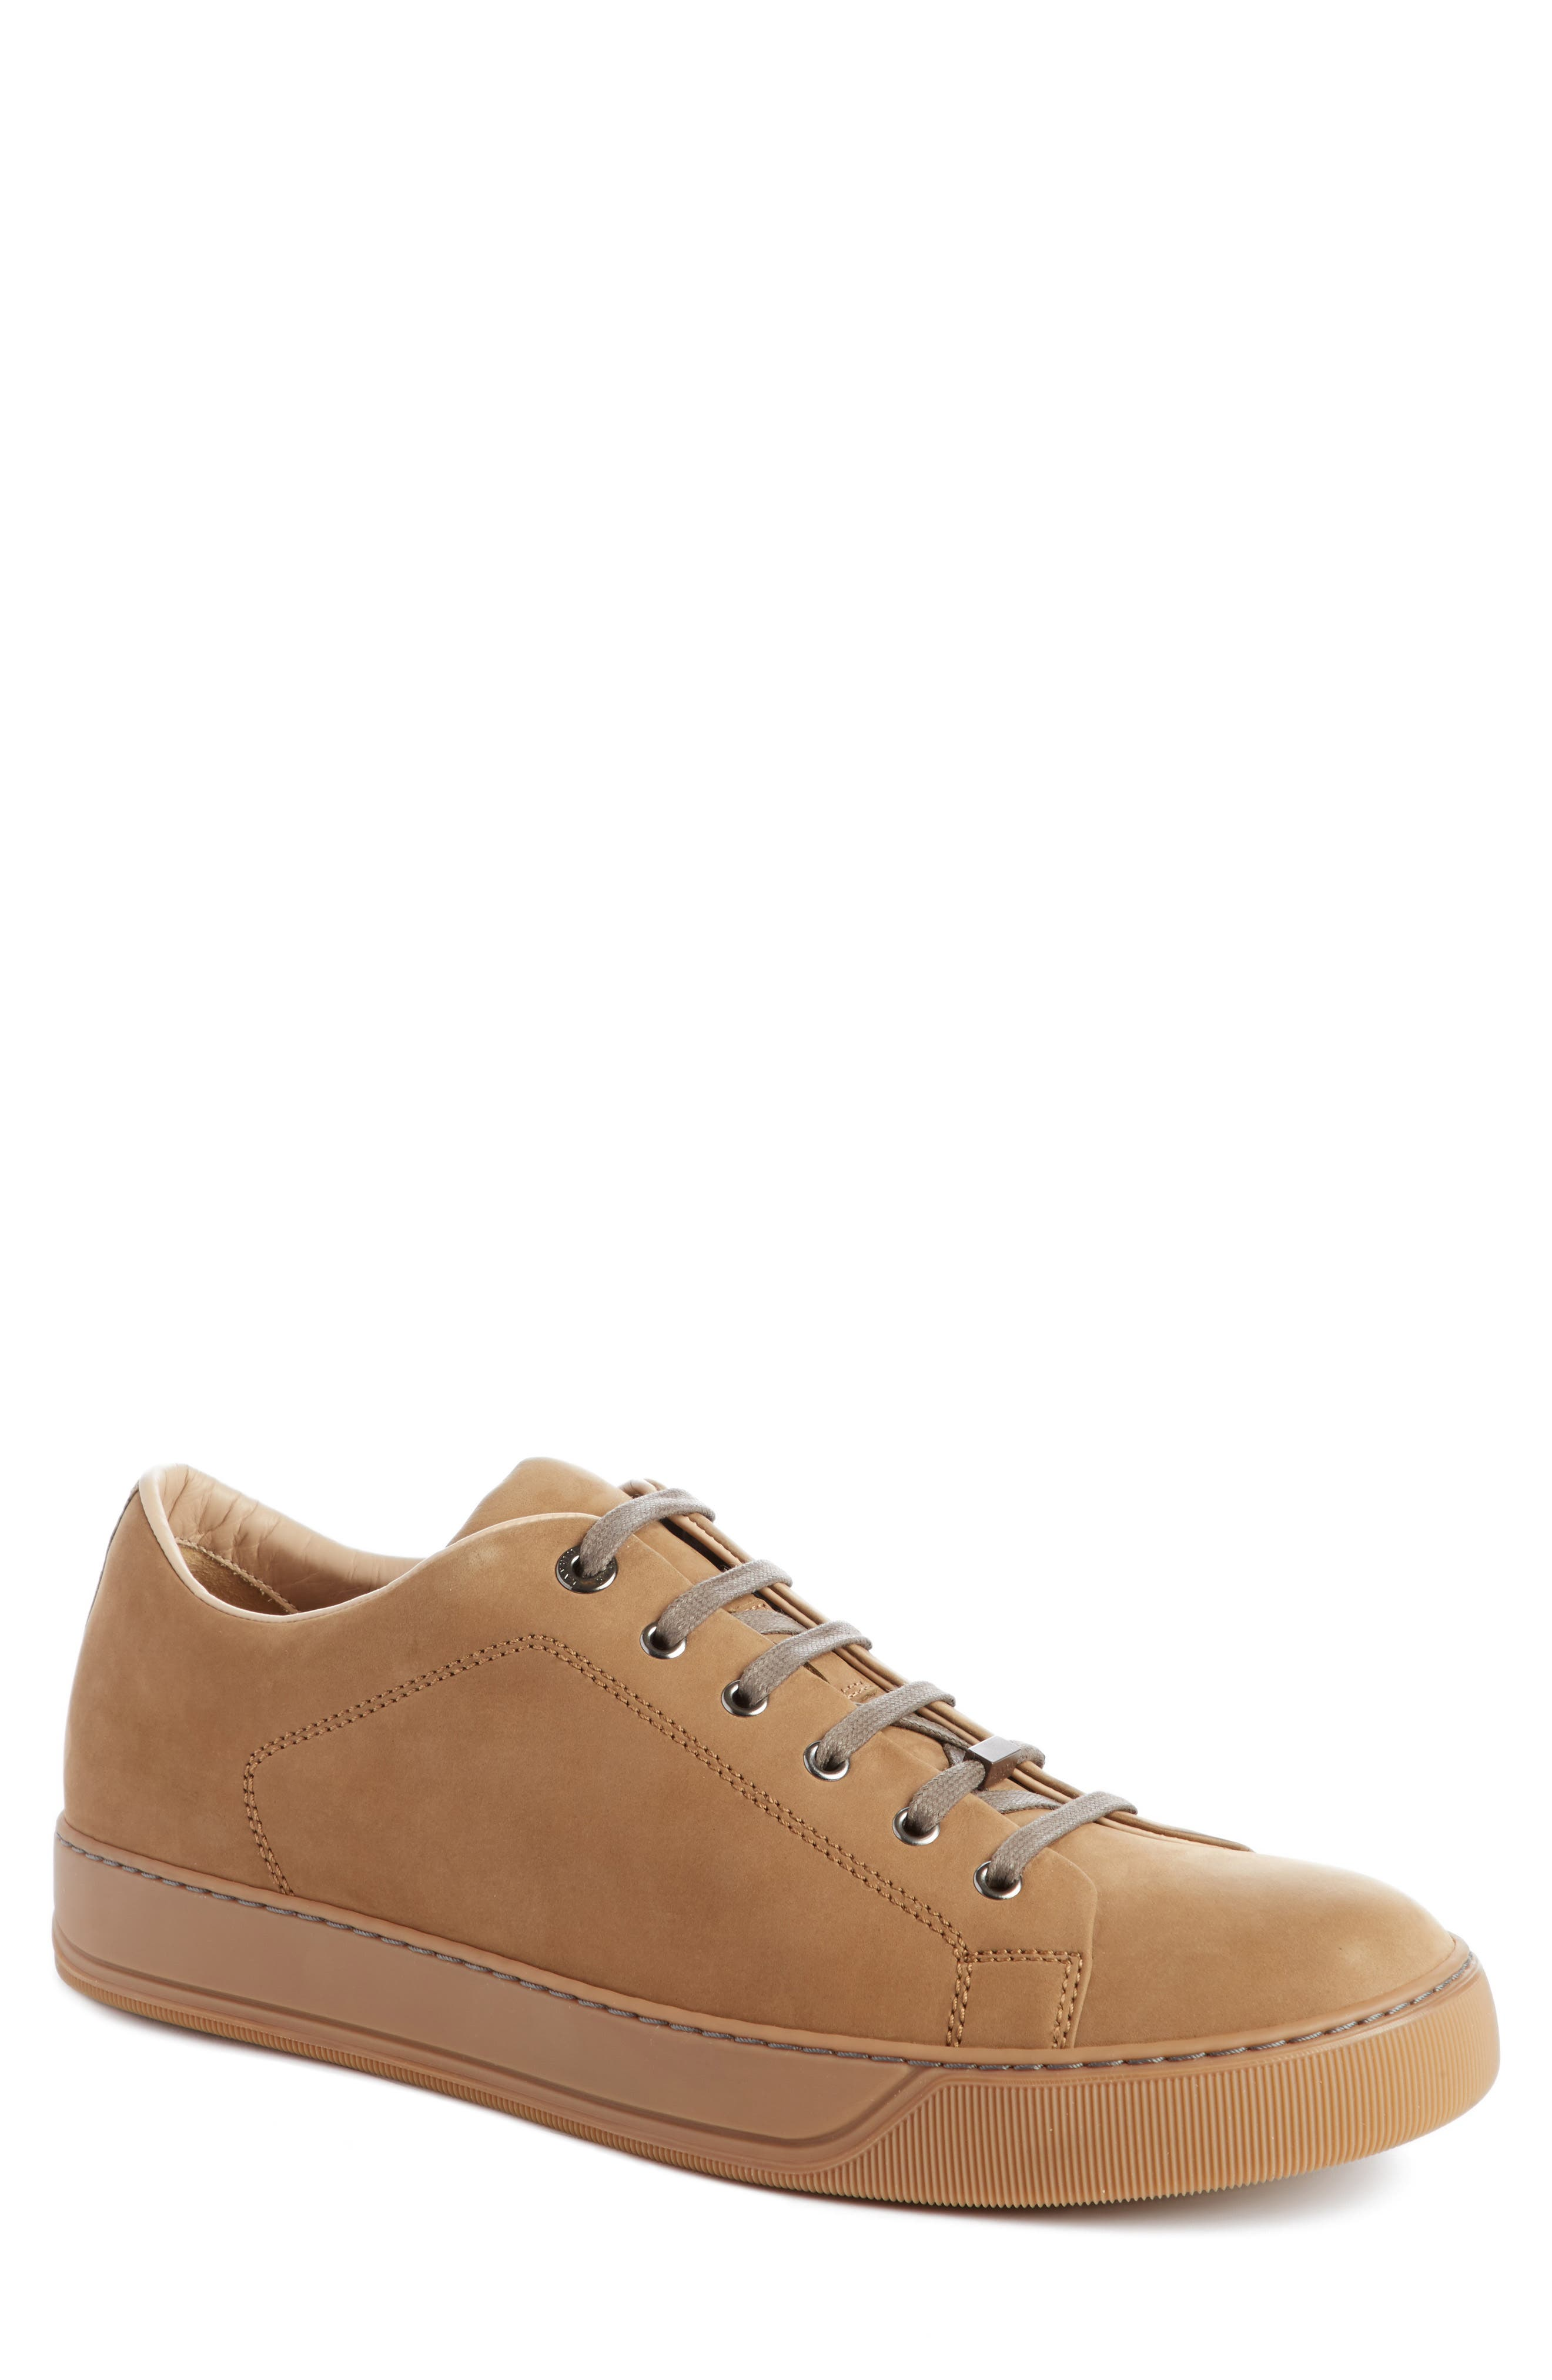 Low Top Cap Toe Sneaker,                         Main,                         color, Havana Suede